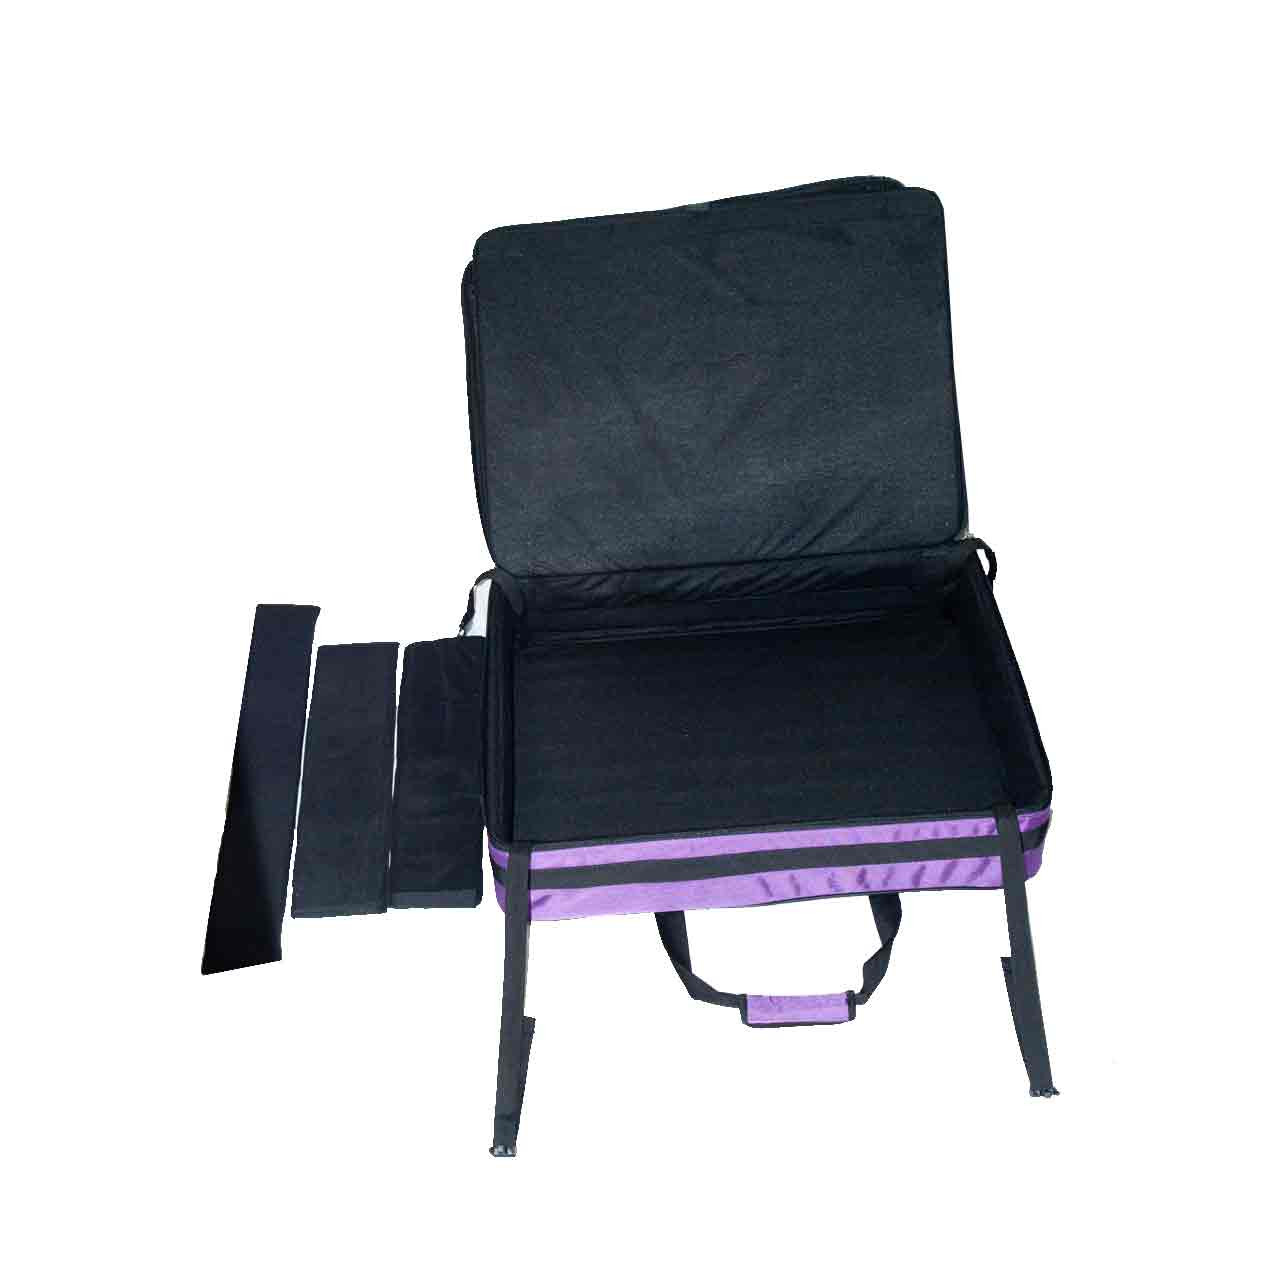 Padded protective board and padded dividers.